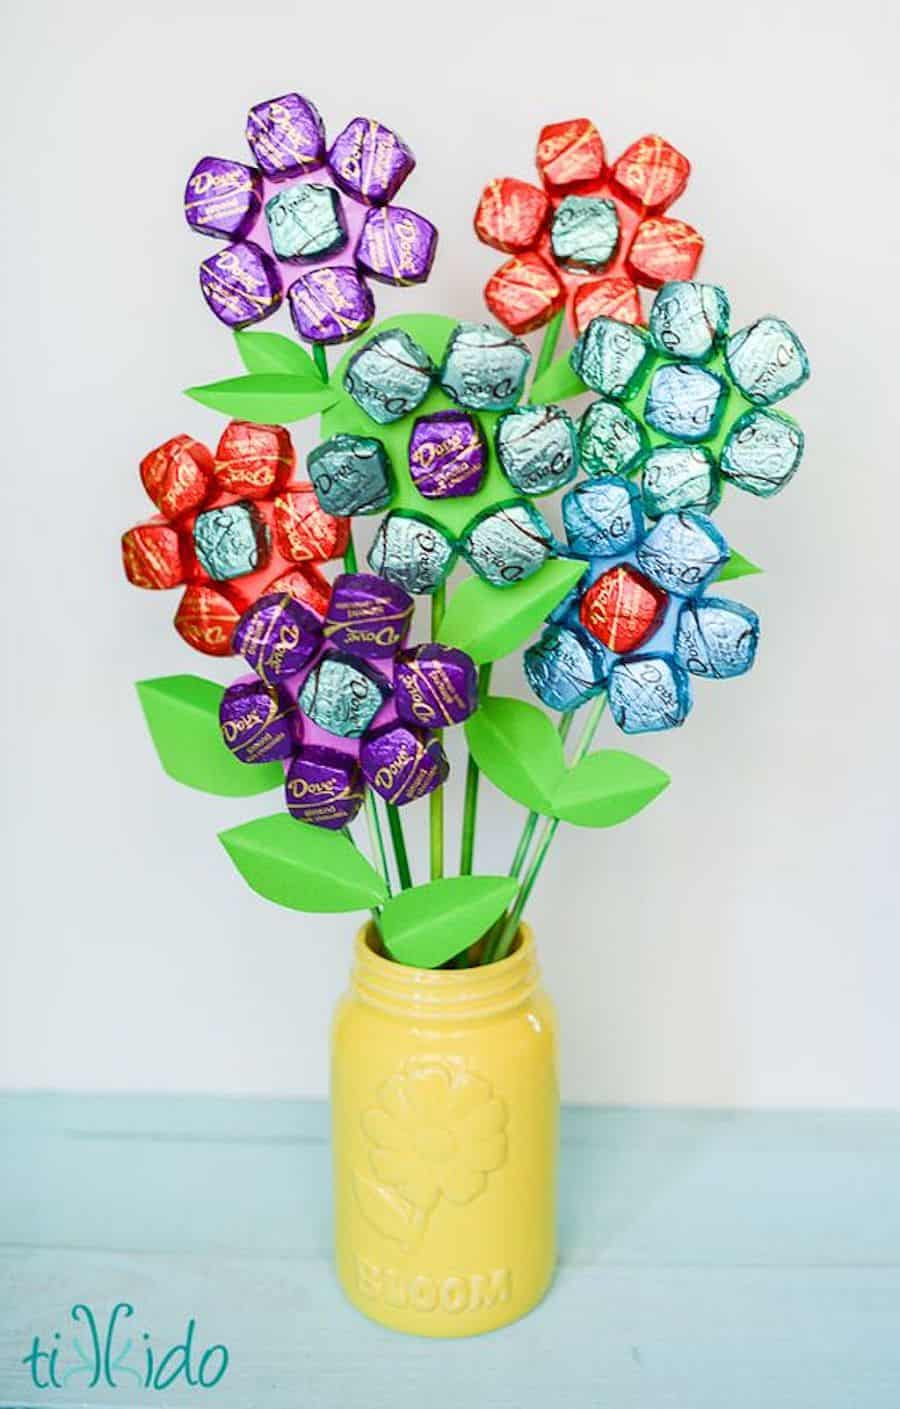 Tasty treats 10 delicious candy crafts view in gallery delightful candy flowers izmirmasajfo Choice Image